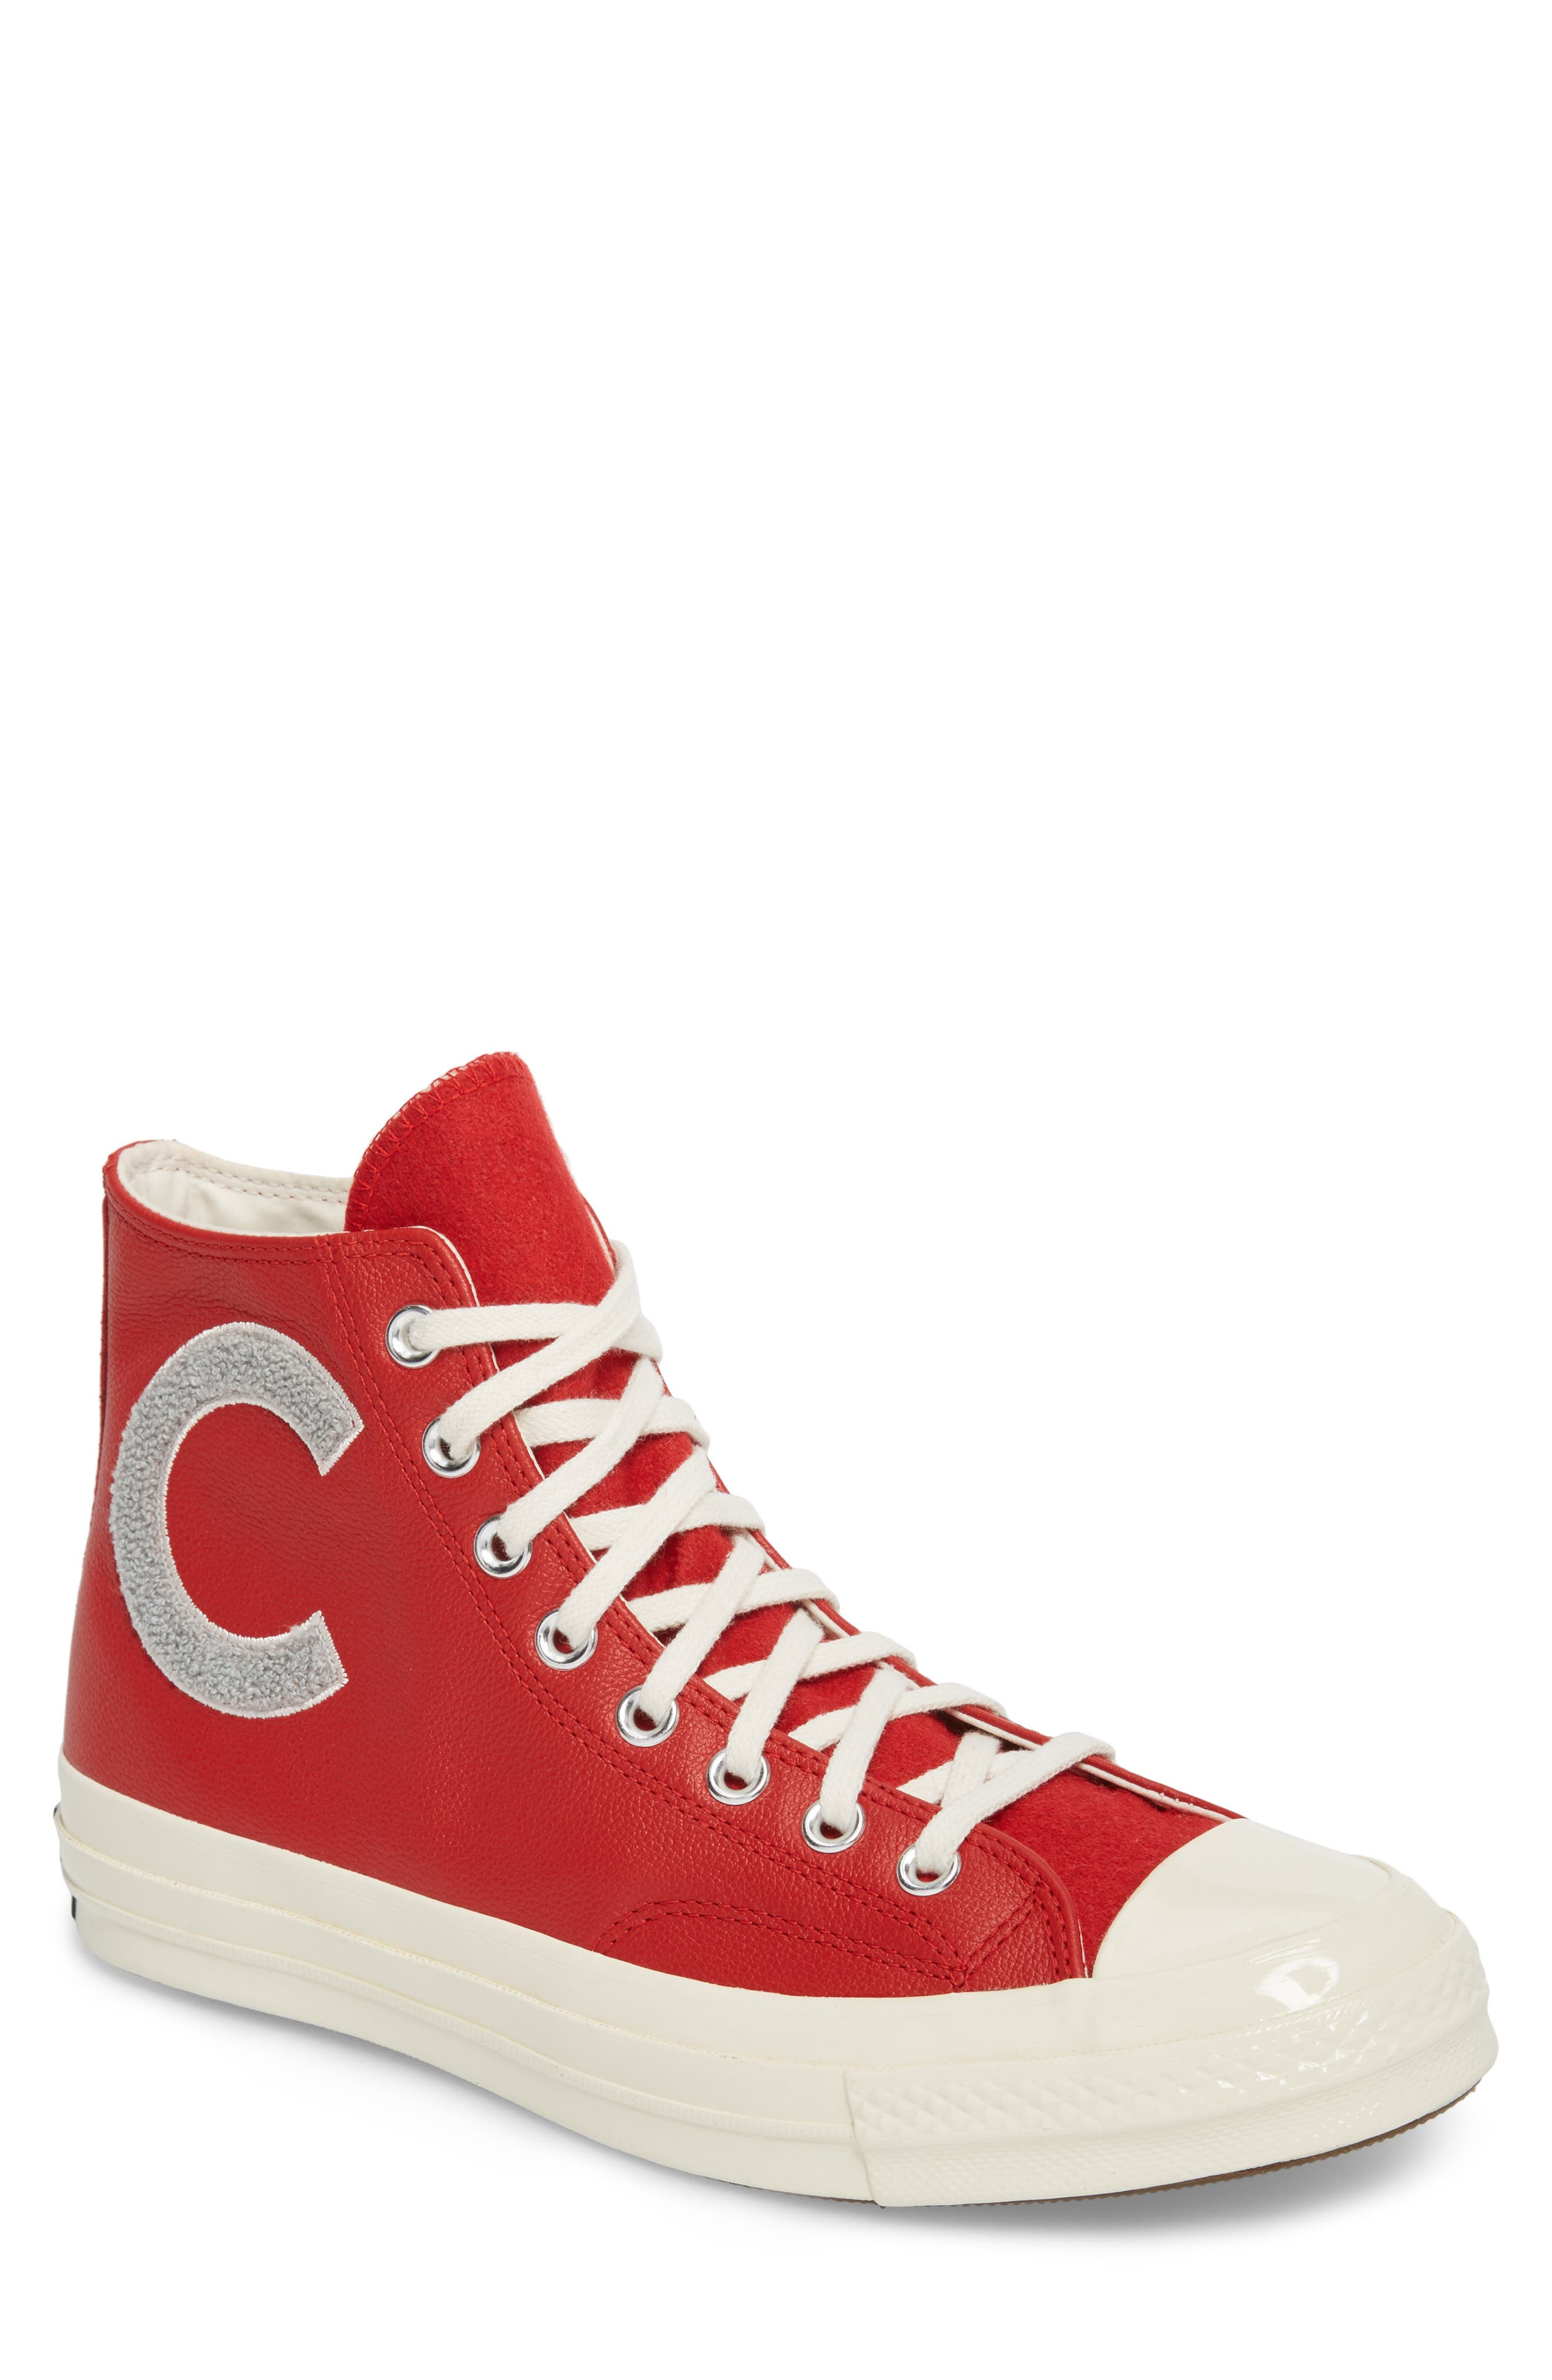 Chuck Taylor<sup>®</sup> All Star<sup>®</sup> Wordmark High Top Sneaker,                             Main thumbnail 1, color,                             Enamel Red Leather